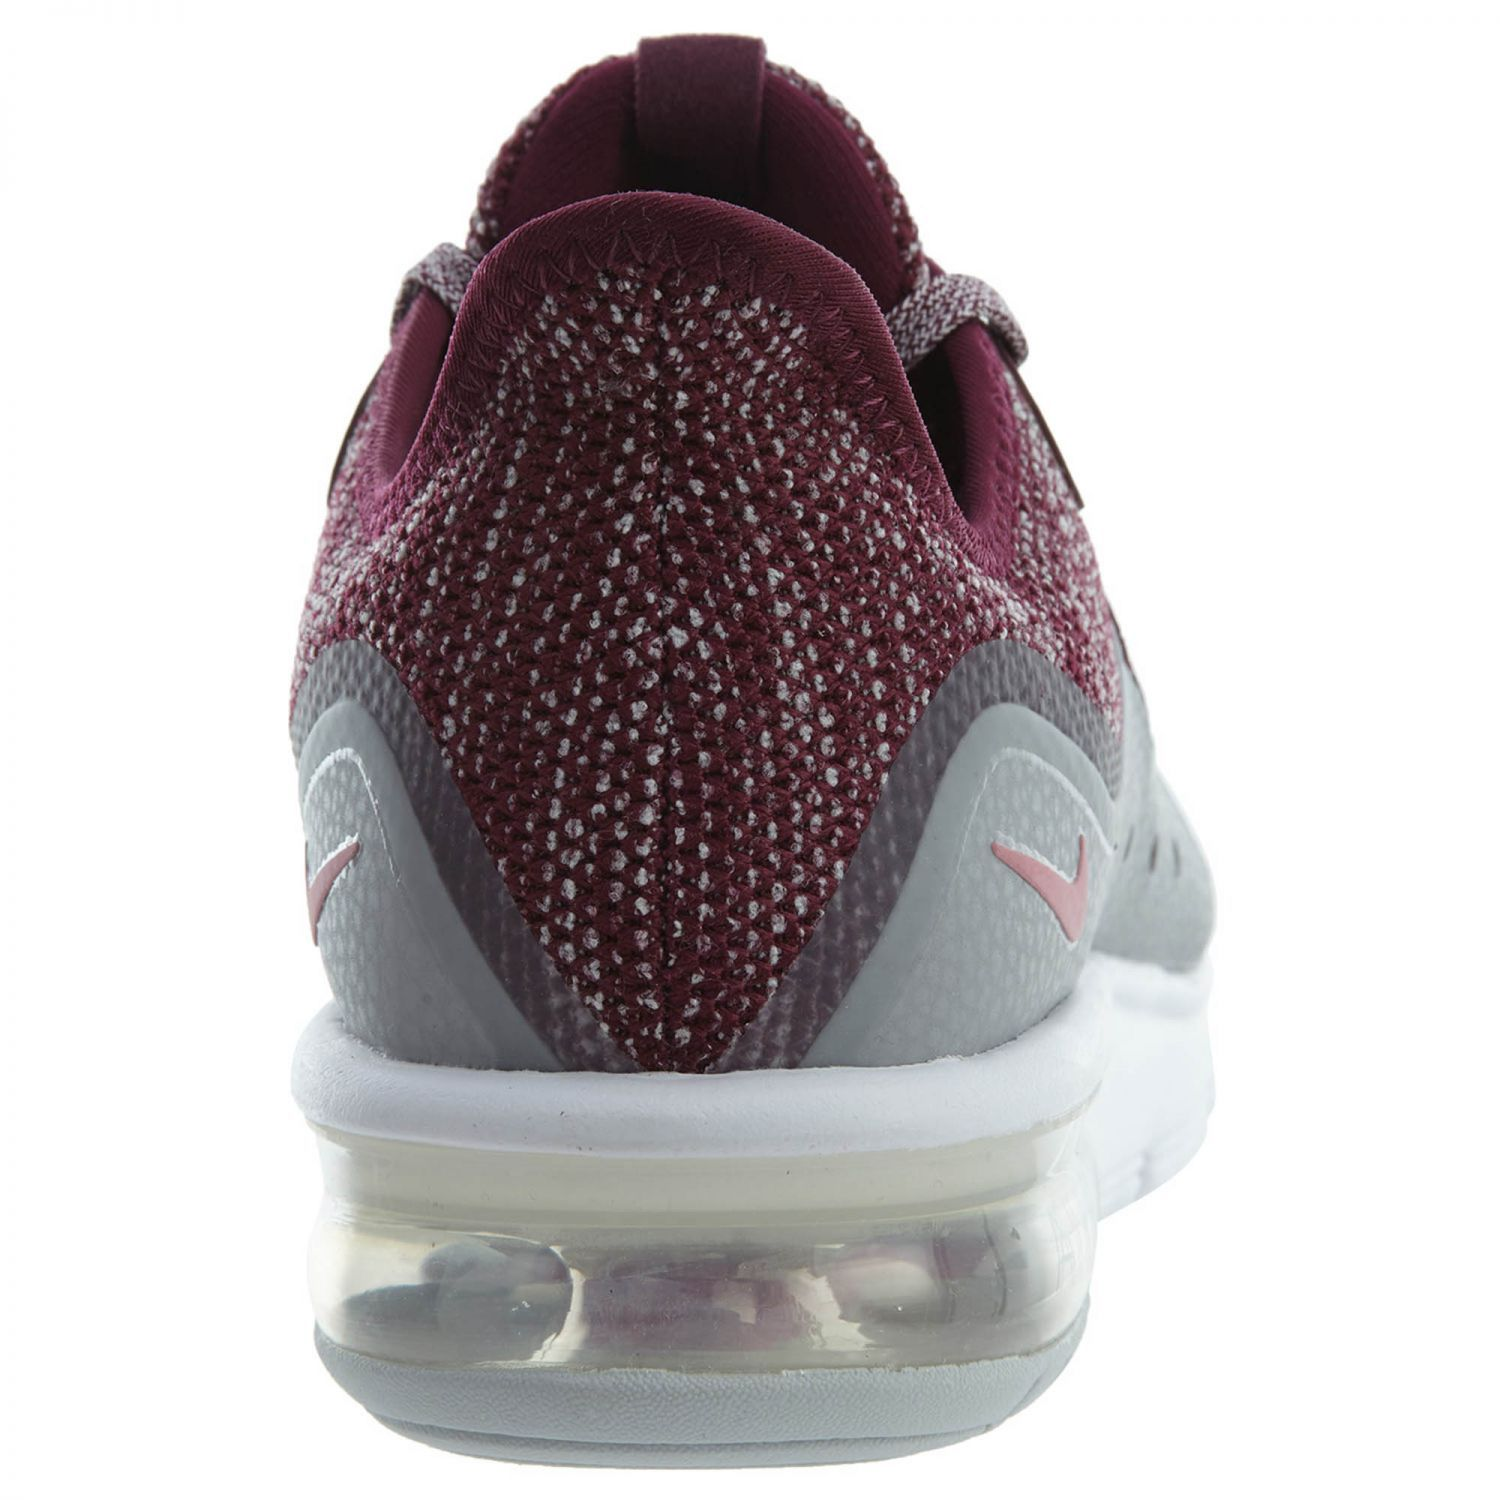 Nike Air Max Sequent 3 Women Bordeaux 7.5 and 50 similar items